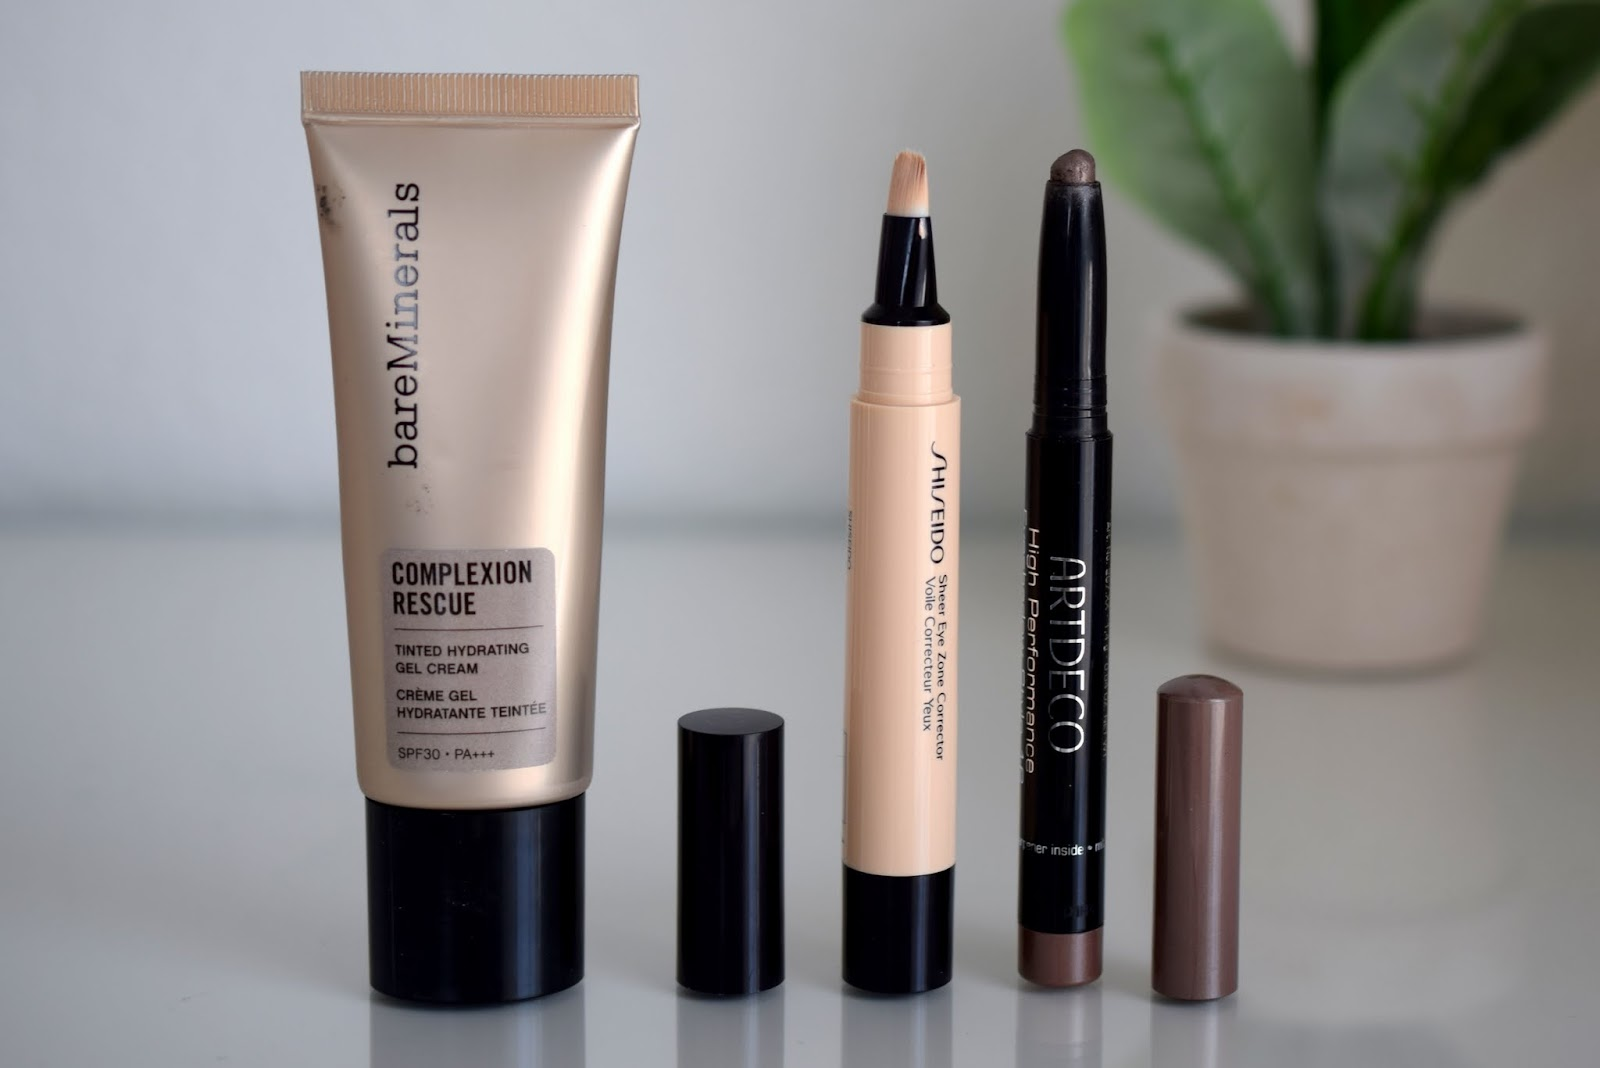 Beauty Favoriten im März: Bare Minerals Complexion rescue, Shiseido Sheer Eyezone Corrector, Artdeco High Performance Eyeshadow Stylo